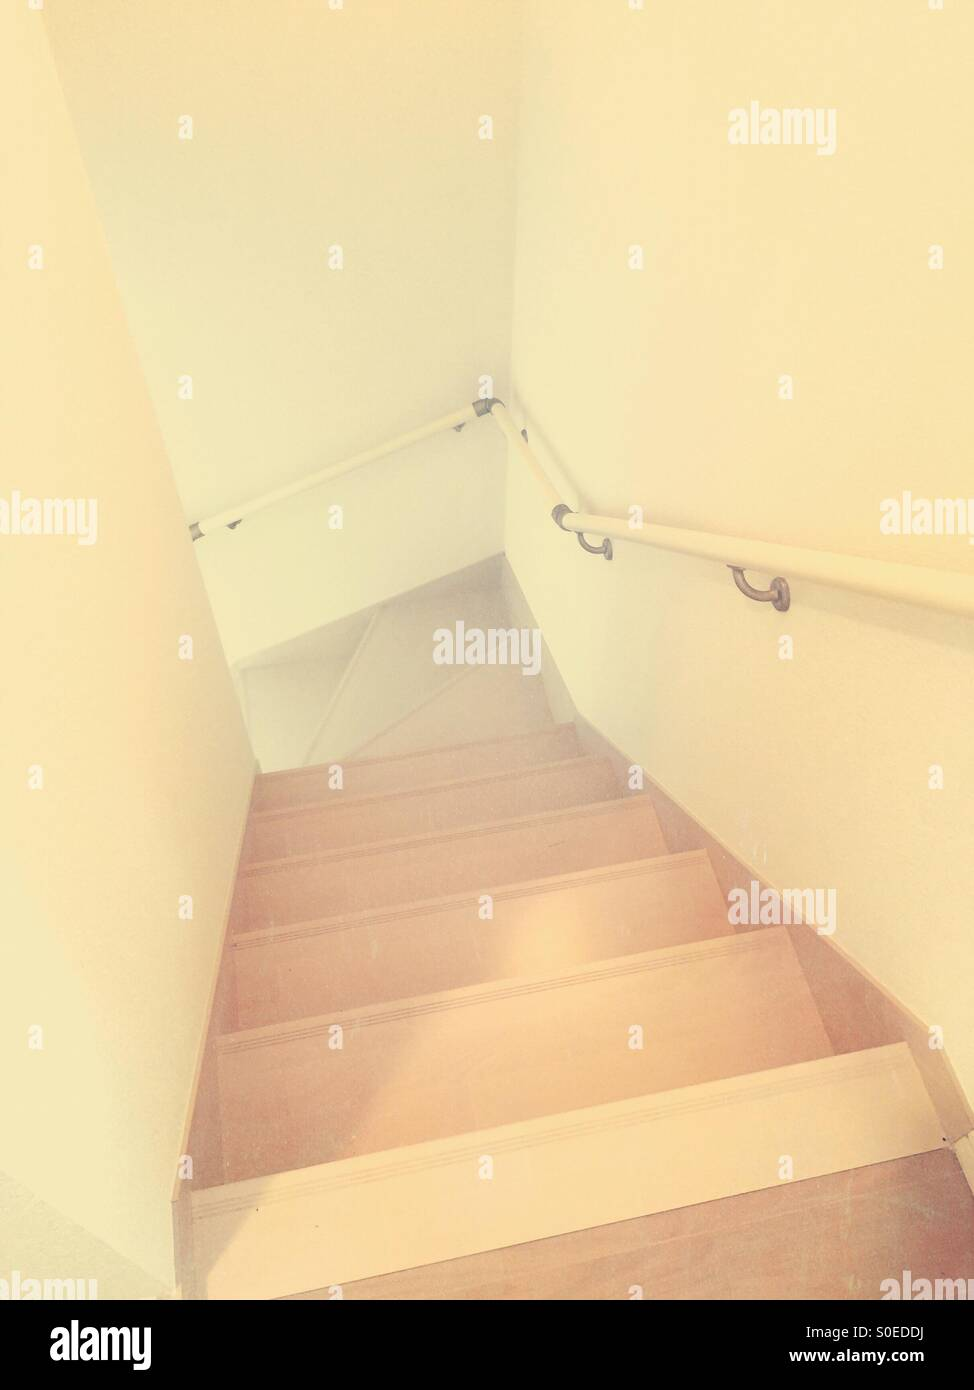 Simple, Narrow Staircase With Light Brown Wood, White Walls And Handrail.  Vintage Paper Texture Overlay